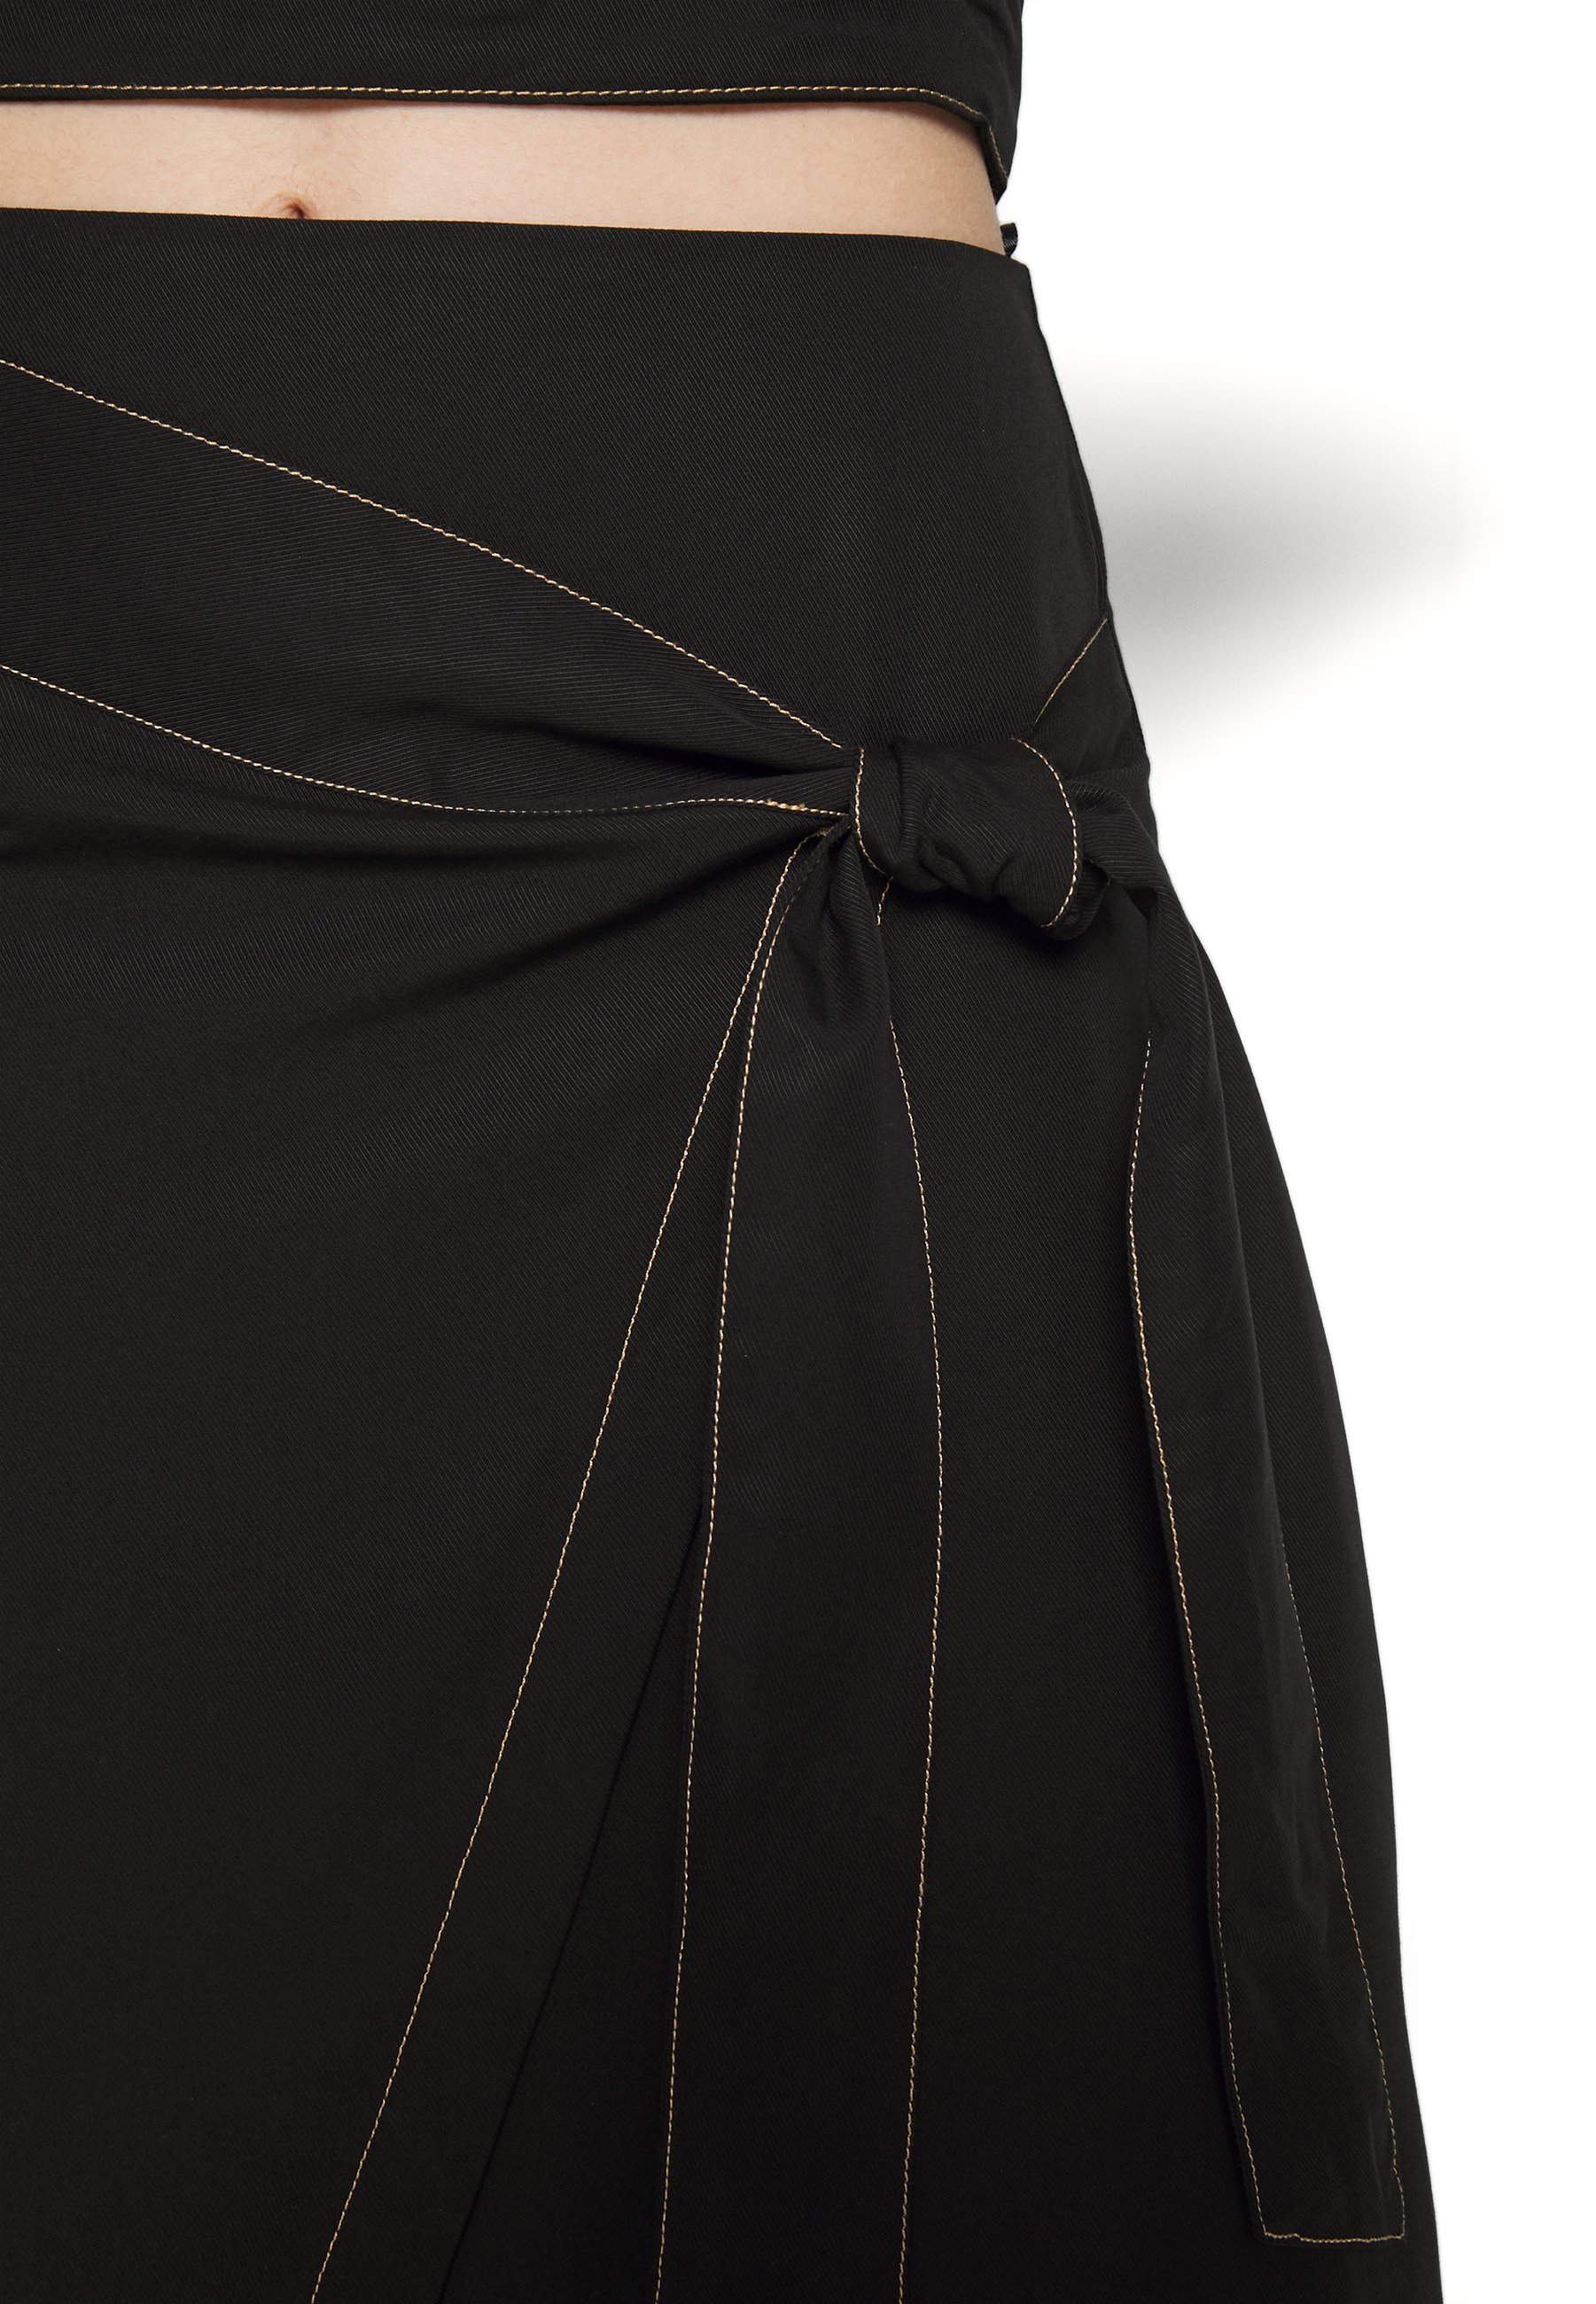 Third Form Western Wrap Skirt - A-line Black UK